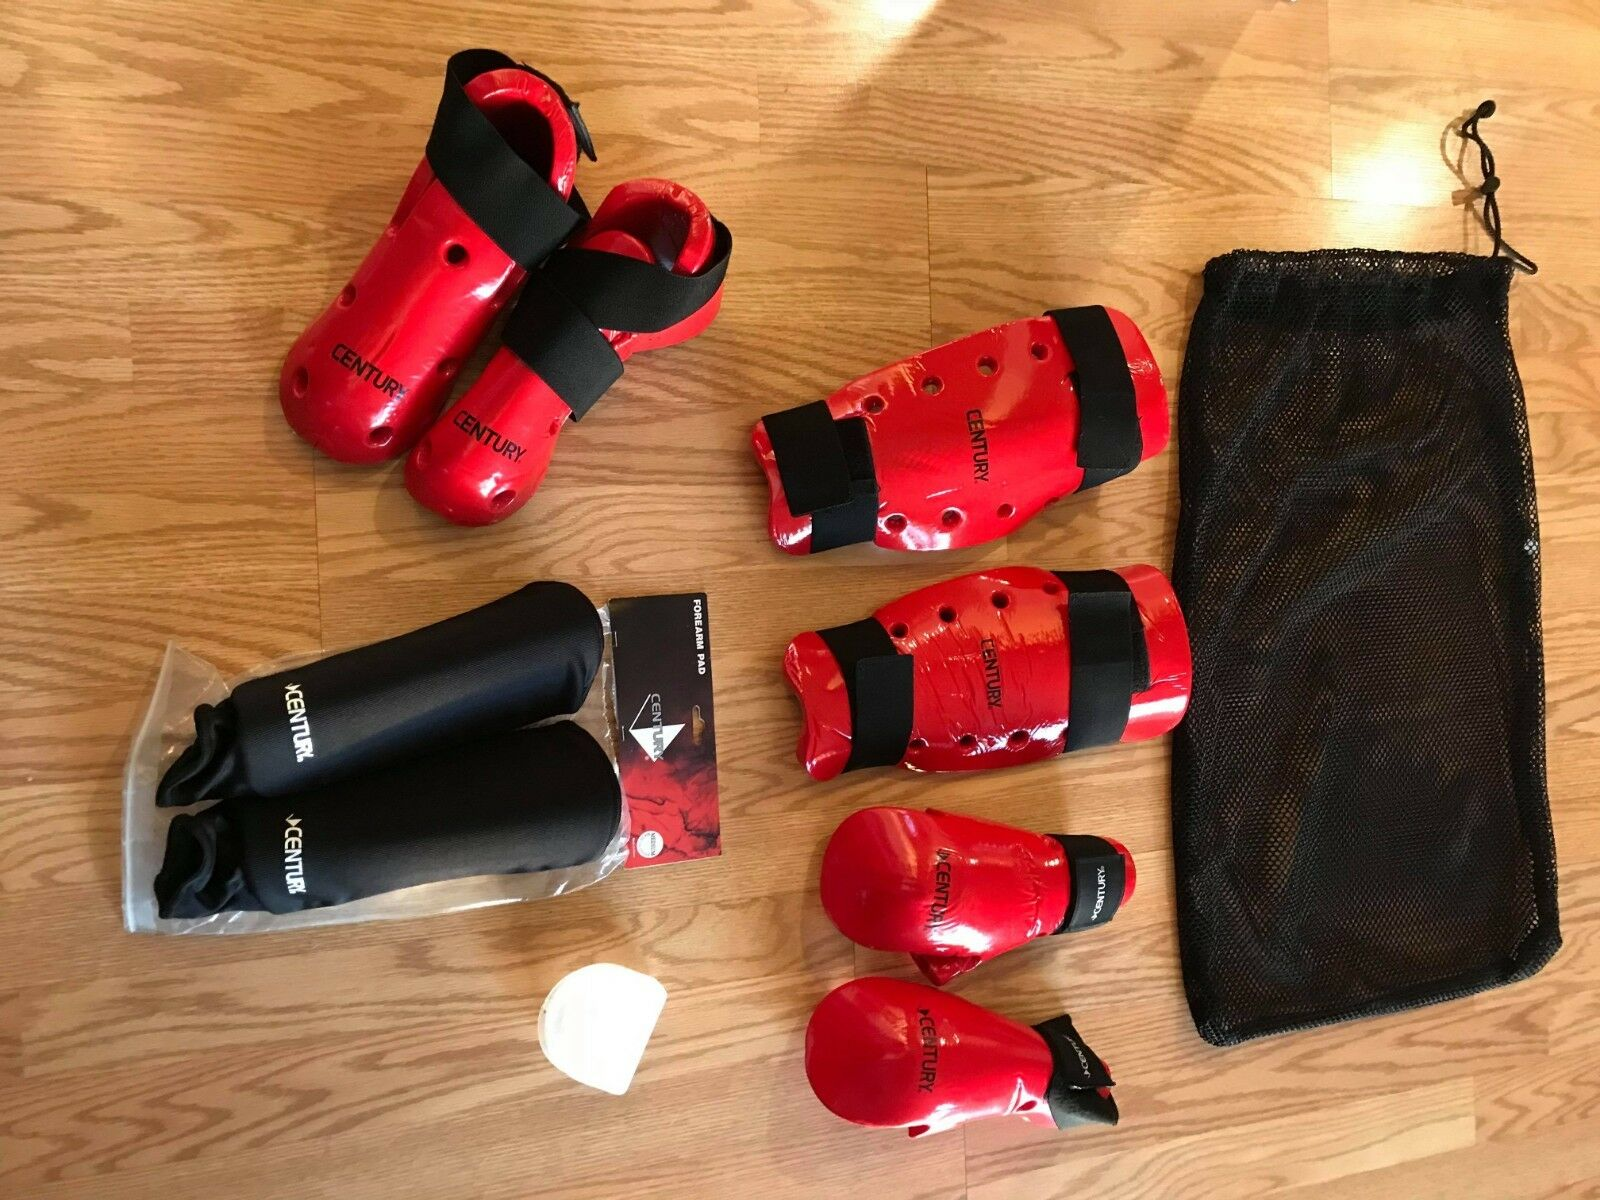 Century Martial Arts Equipment Set